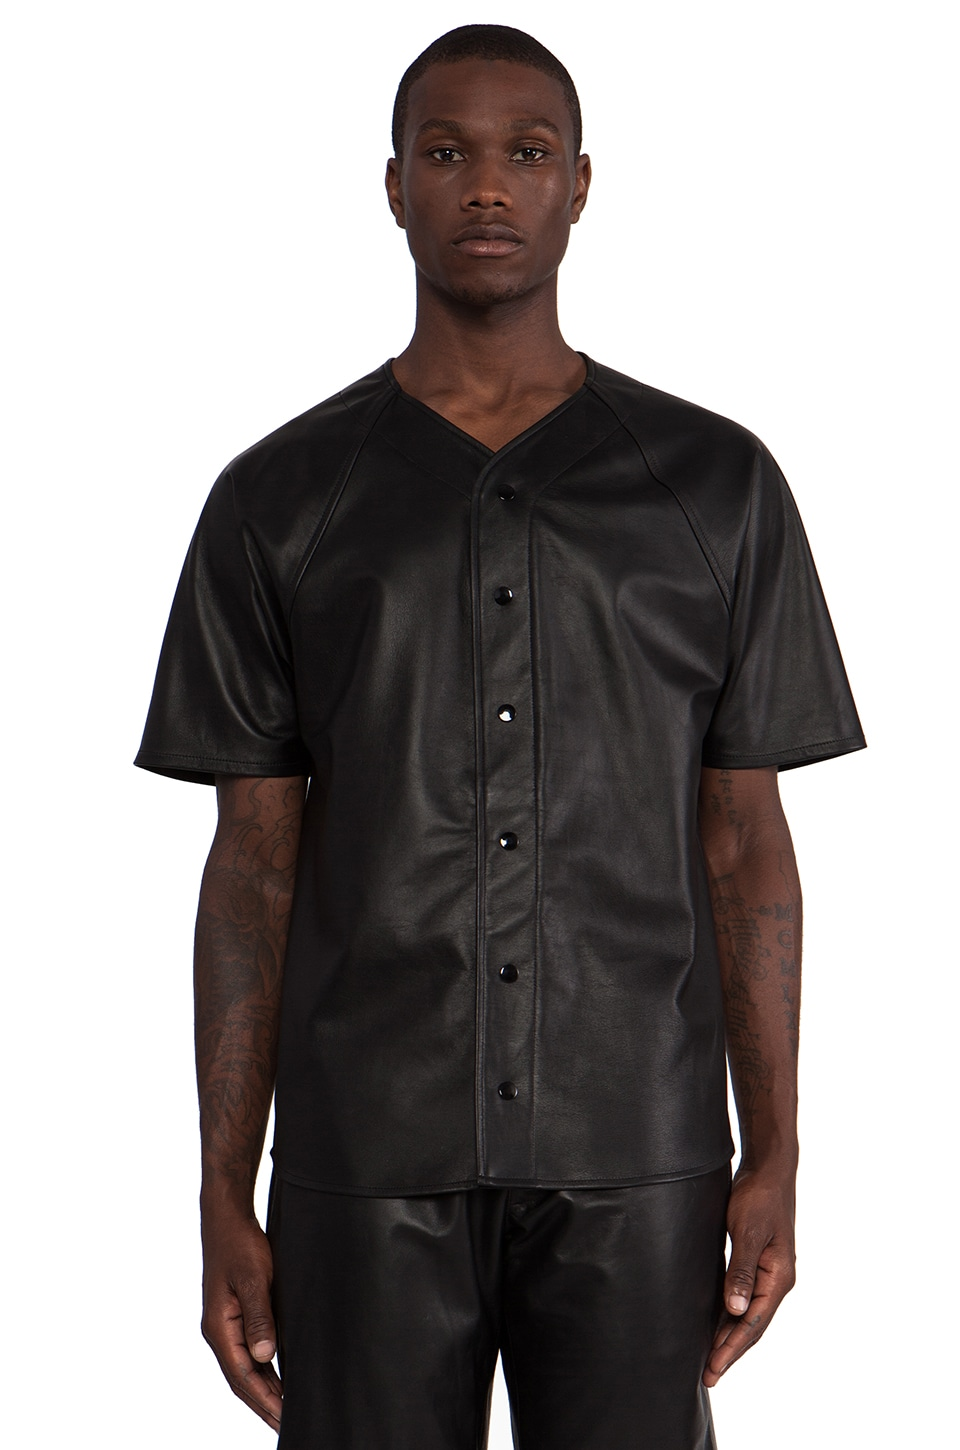 Laer Leather Baseball Jersey in Black